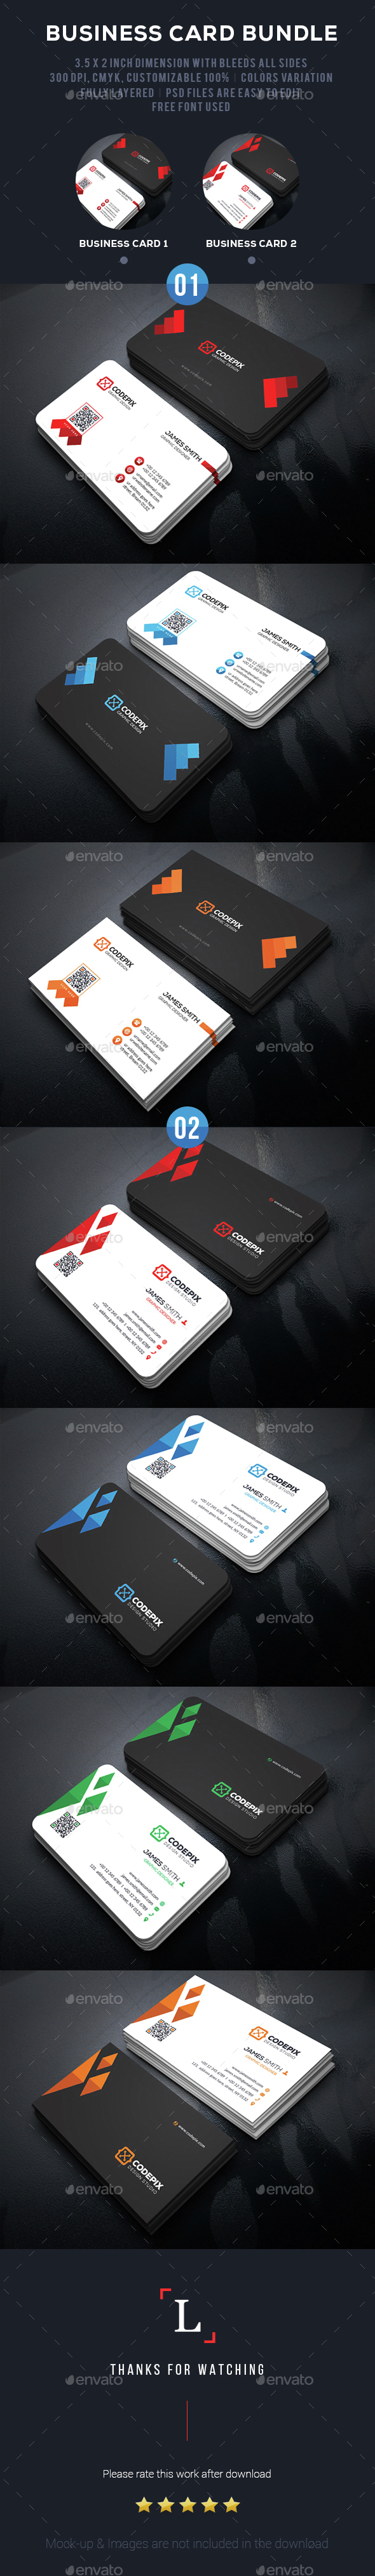 Graphic Business Card Bundle - Business Cards Print Templates